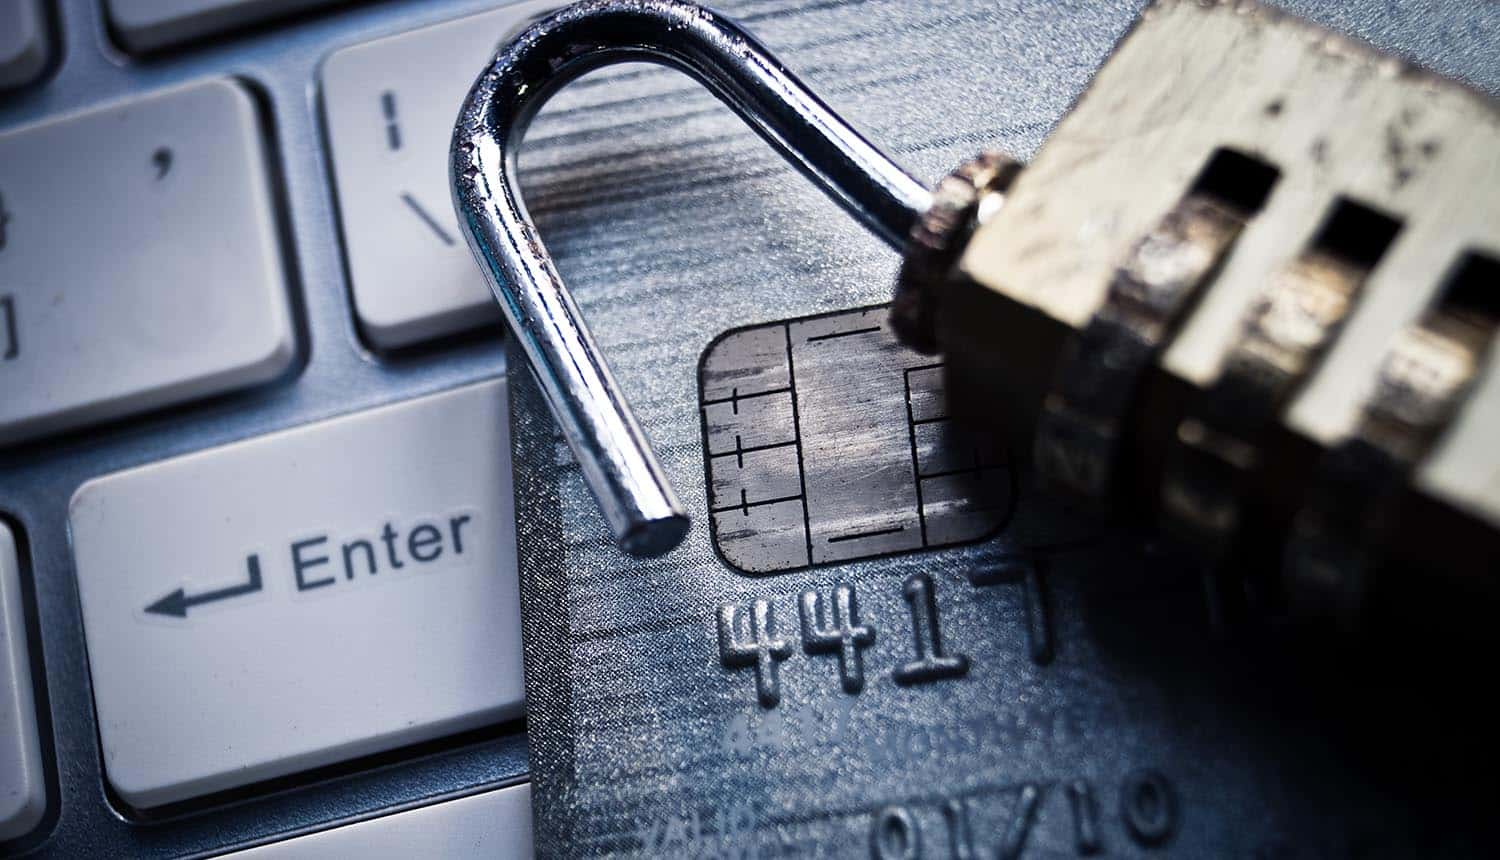 Broken padlock and credit card on keyboard showing replacement of 12 million bank cards due to internal security breach through master key at South African Postbank